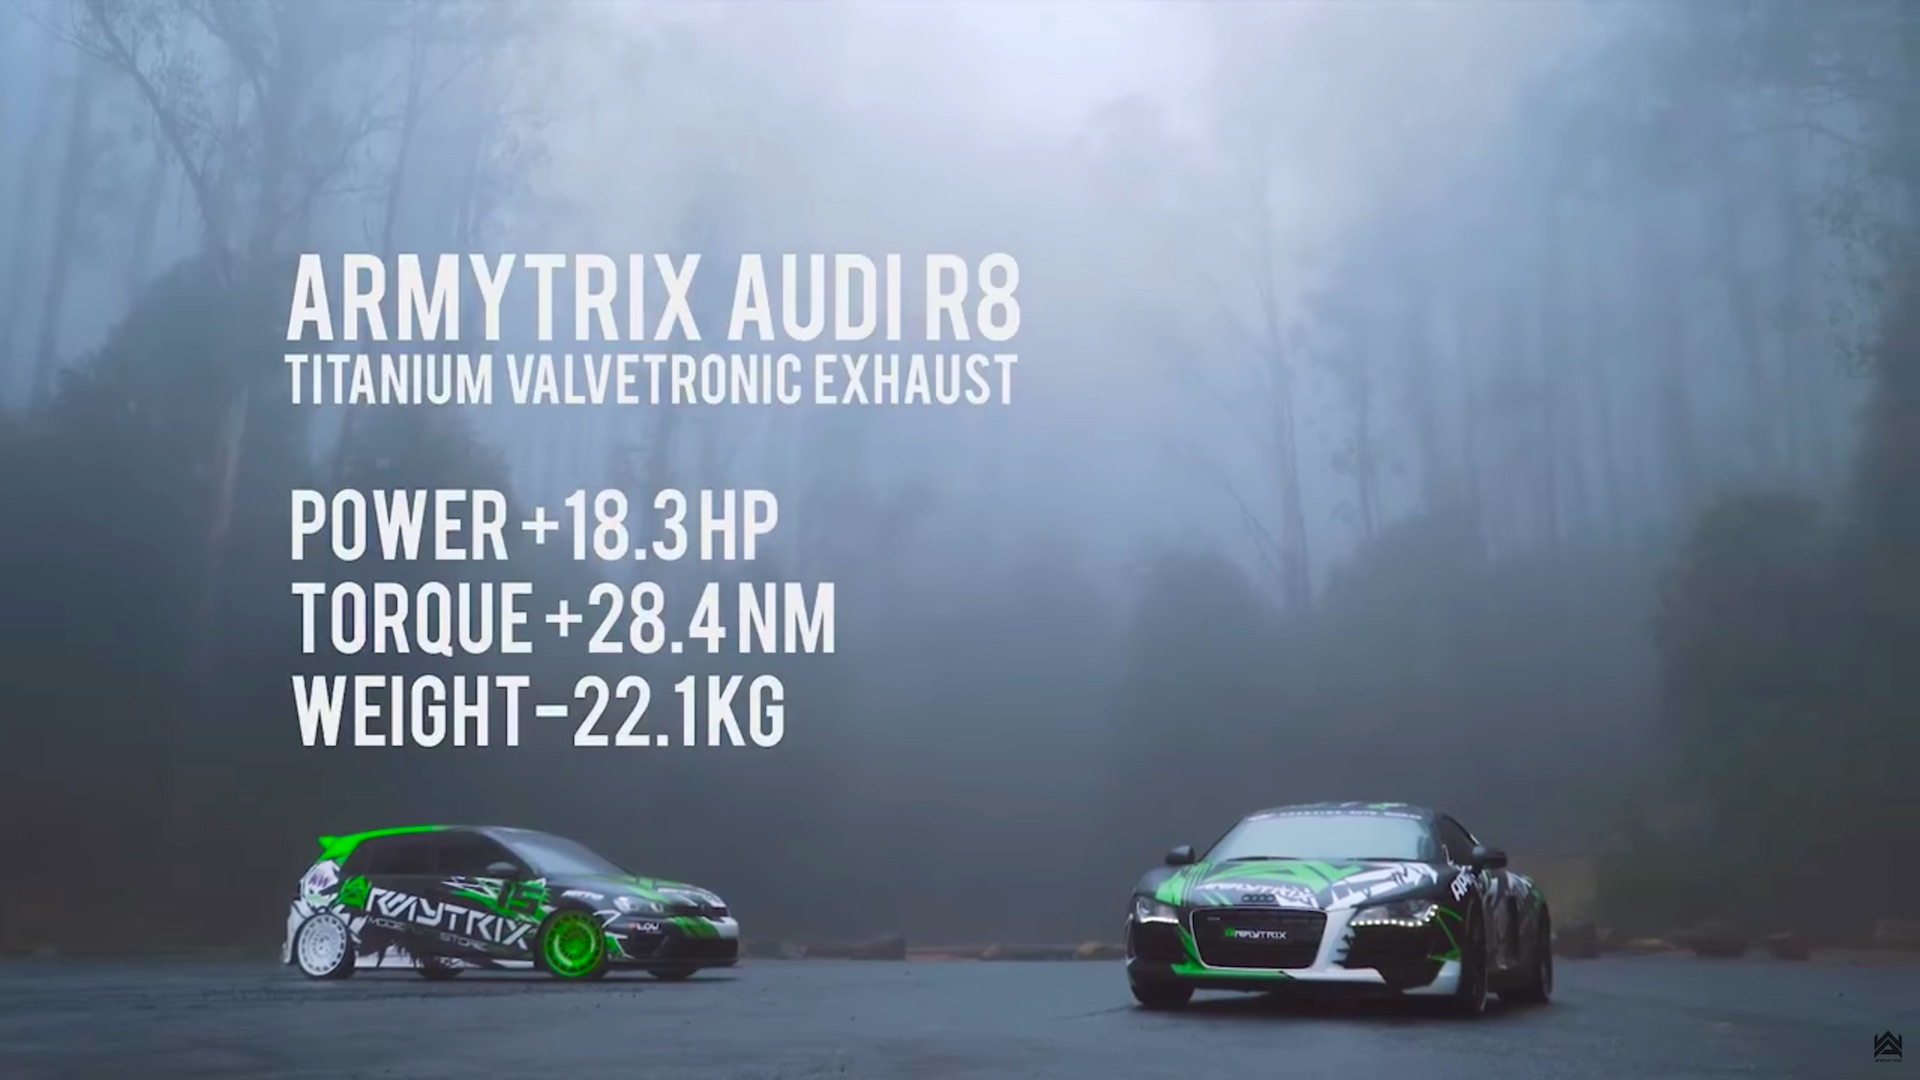 armytrix-australia-showcases-audi-r8-and-golf-r-4